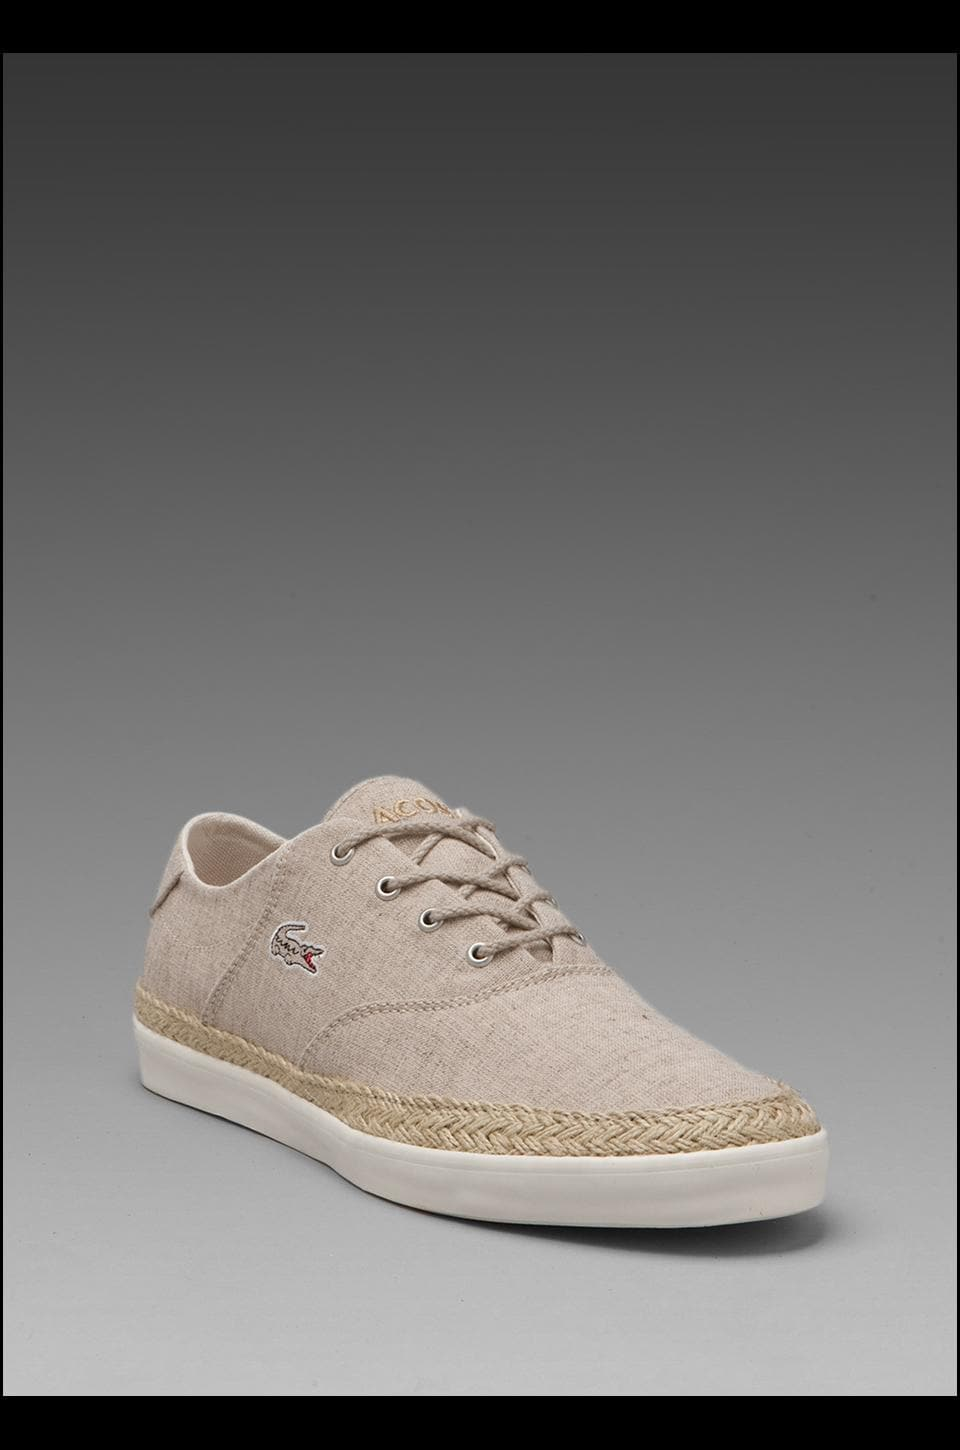 Lacoste Glendon Espa in Natural